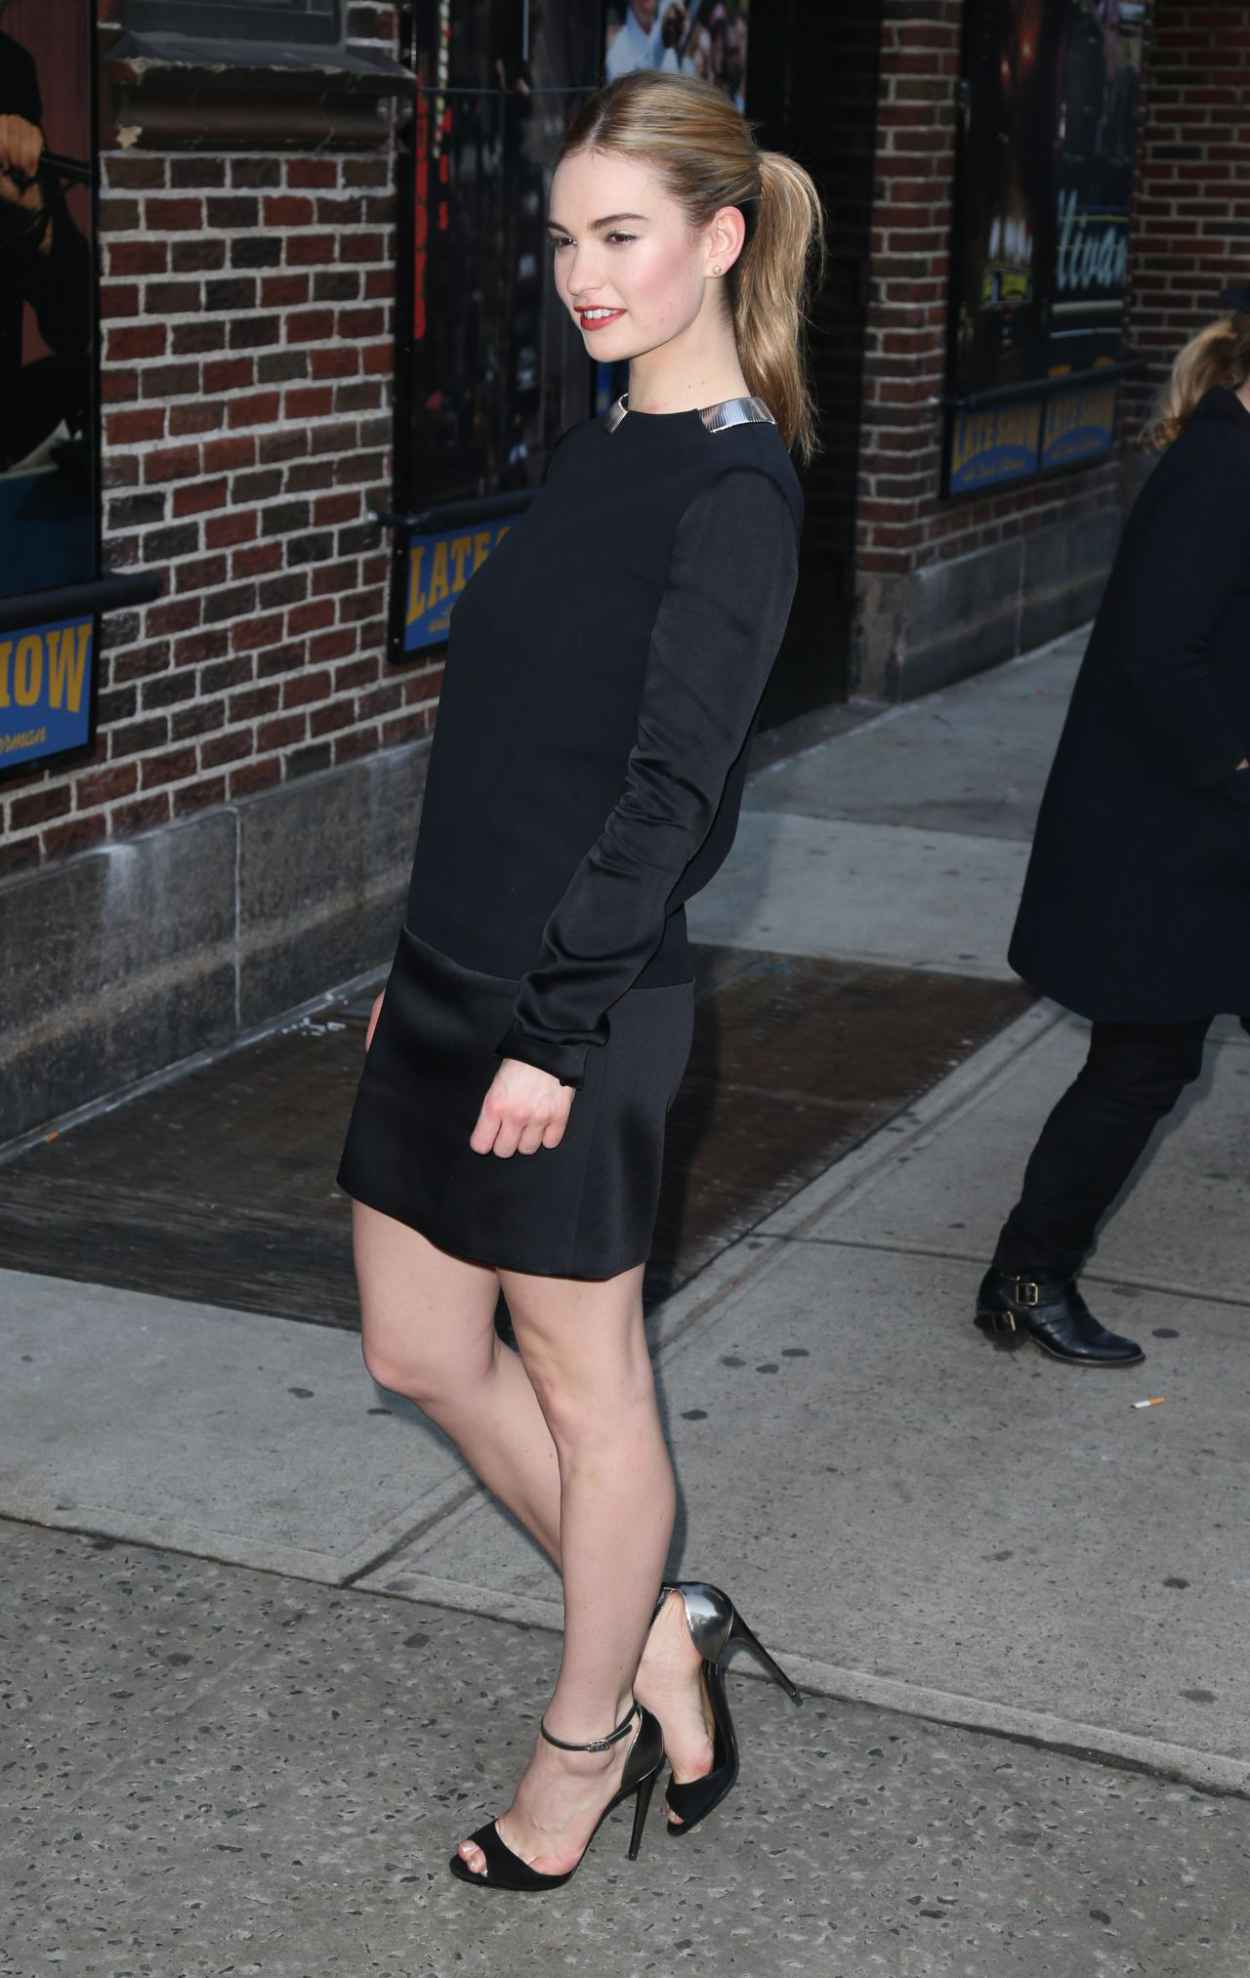 Lily James Arriving to Appear on Late Show With David Letterman in New York City, March 2015 ...